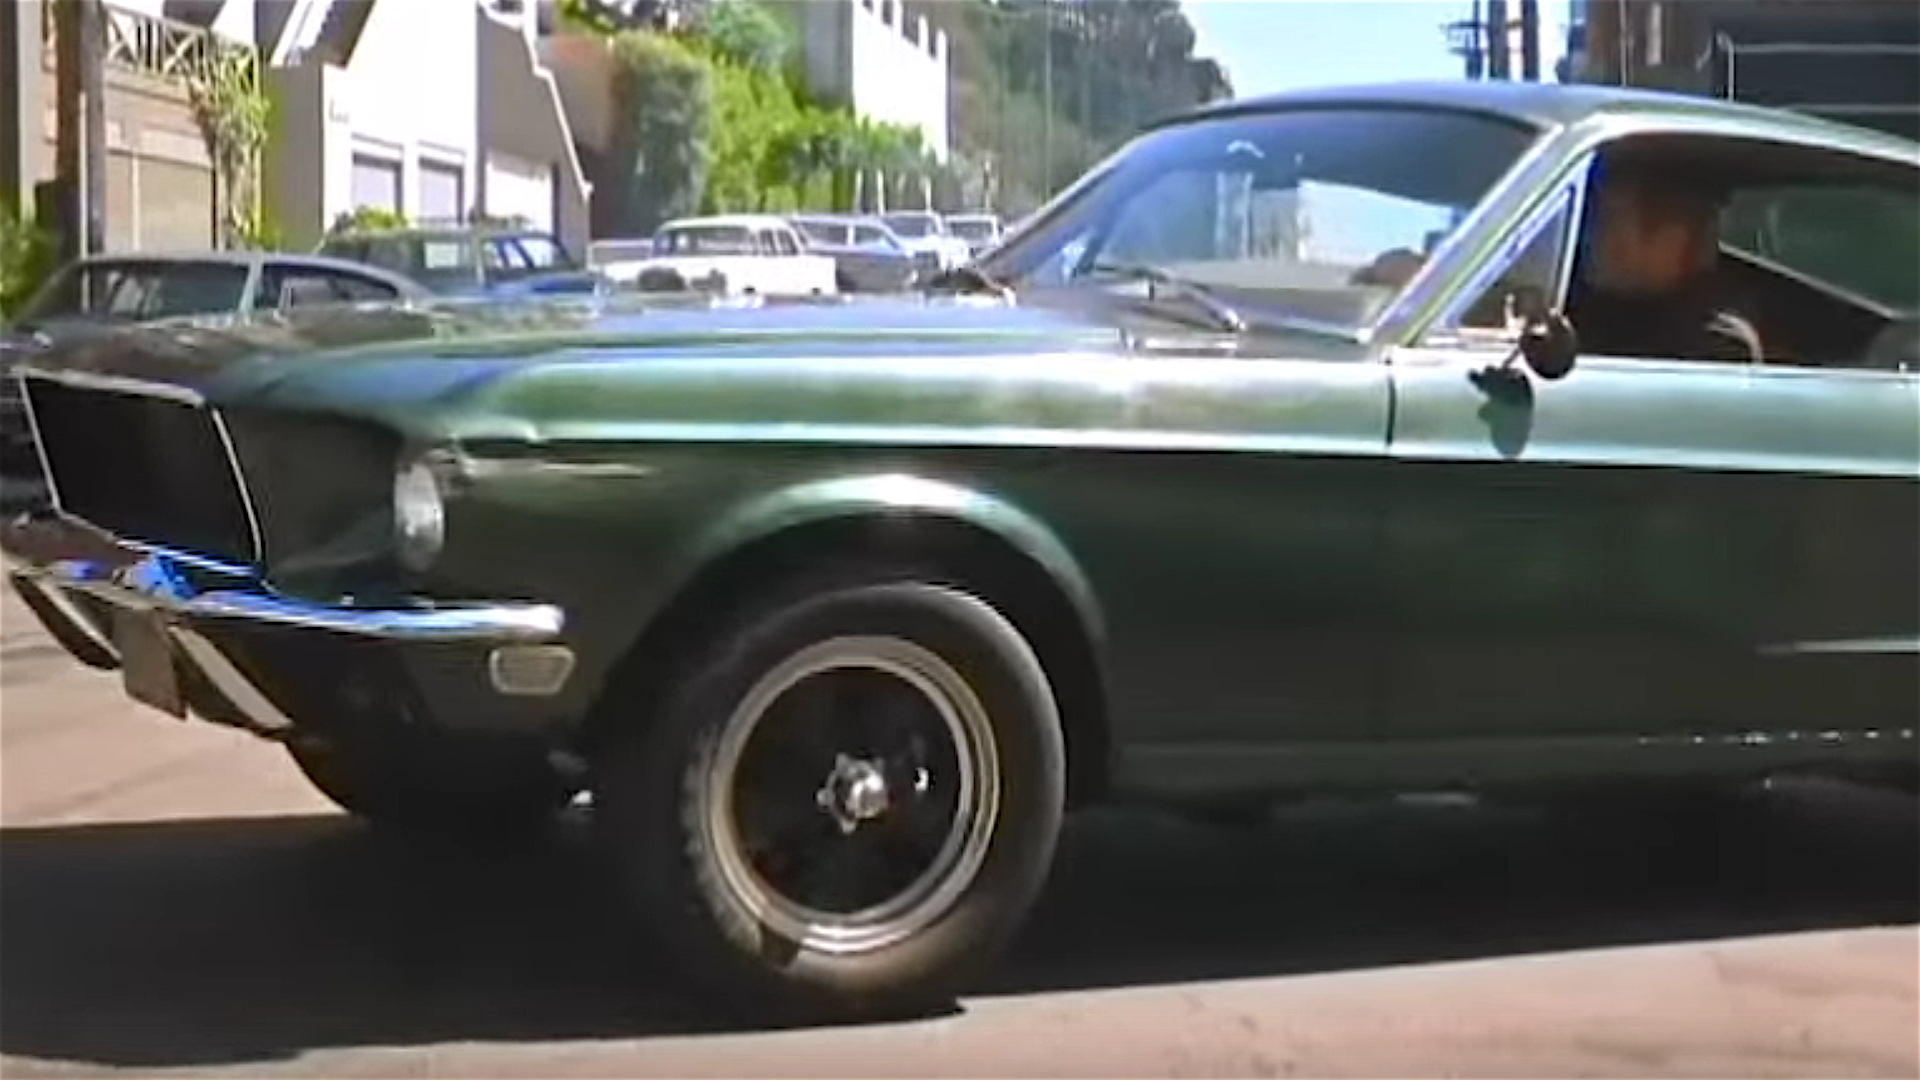 Missing Bullitt Mustang Possibly Found Decades Later